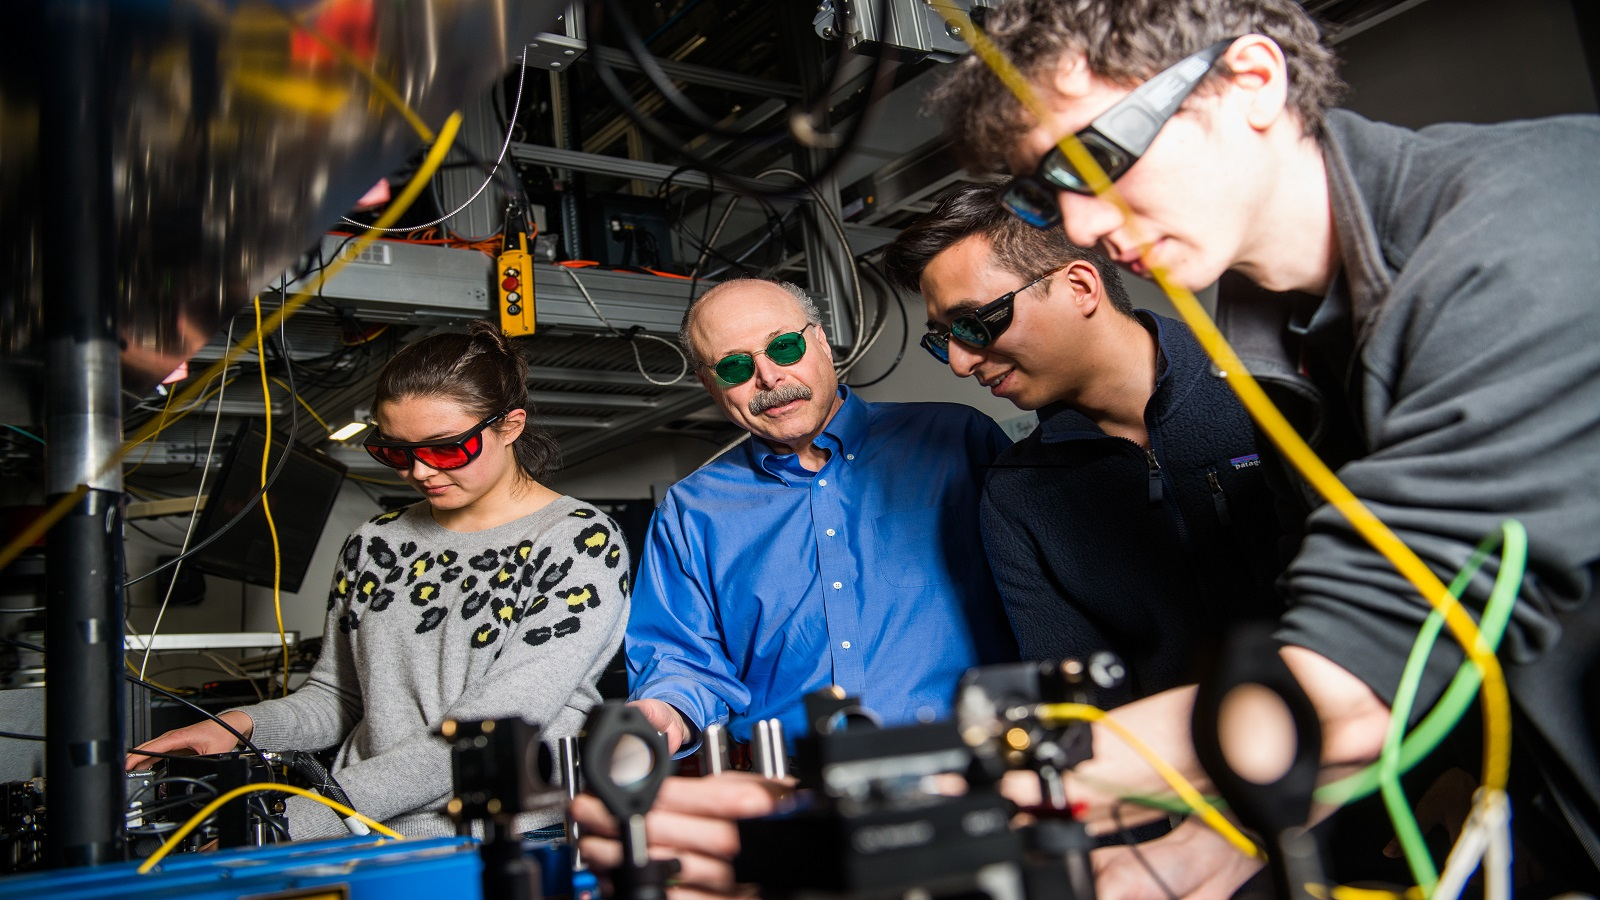 David Awschalom, physicist at UChicago and Argonne National Laboratory, reviews data from a quantum information experiment with graduate students in his lab. (Image by UChicago.)